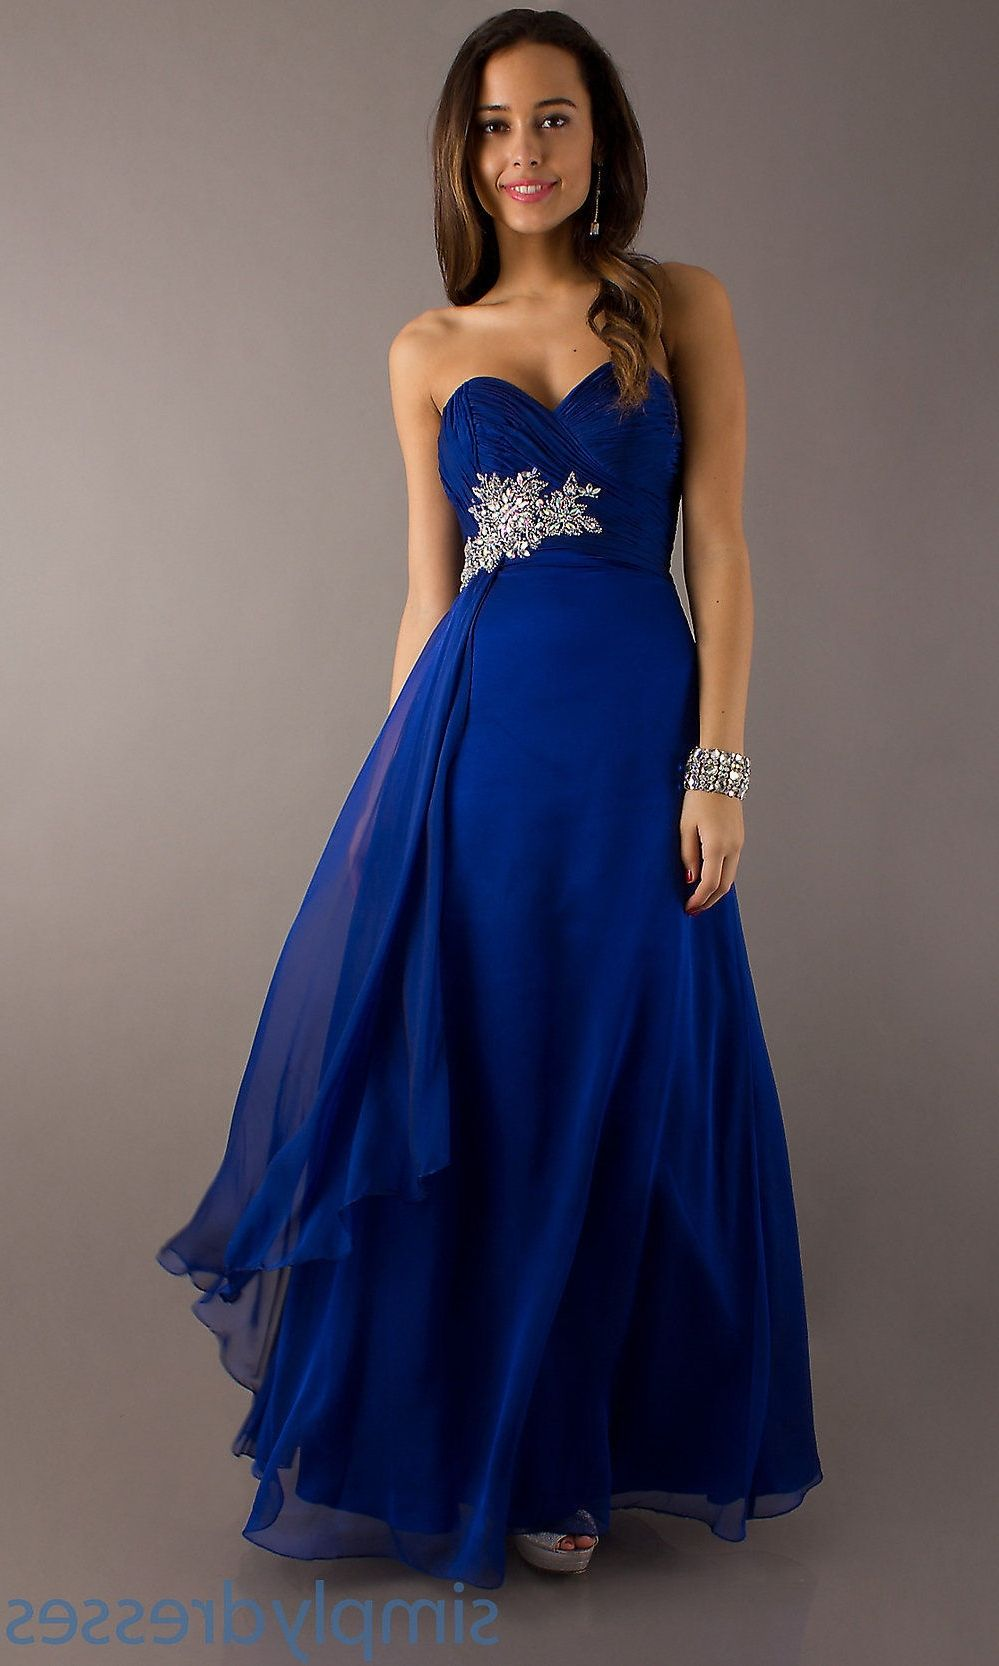 Royal blue and silver wedding gowns royal blue